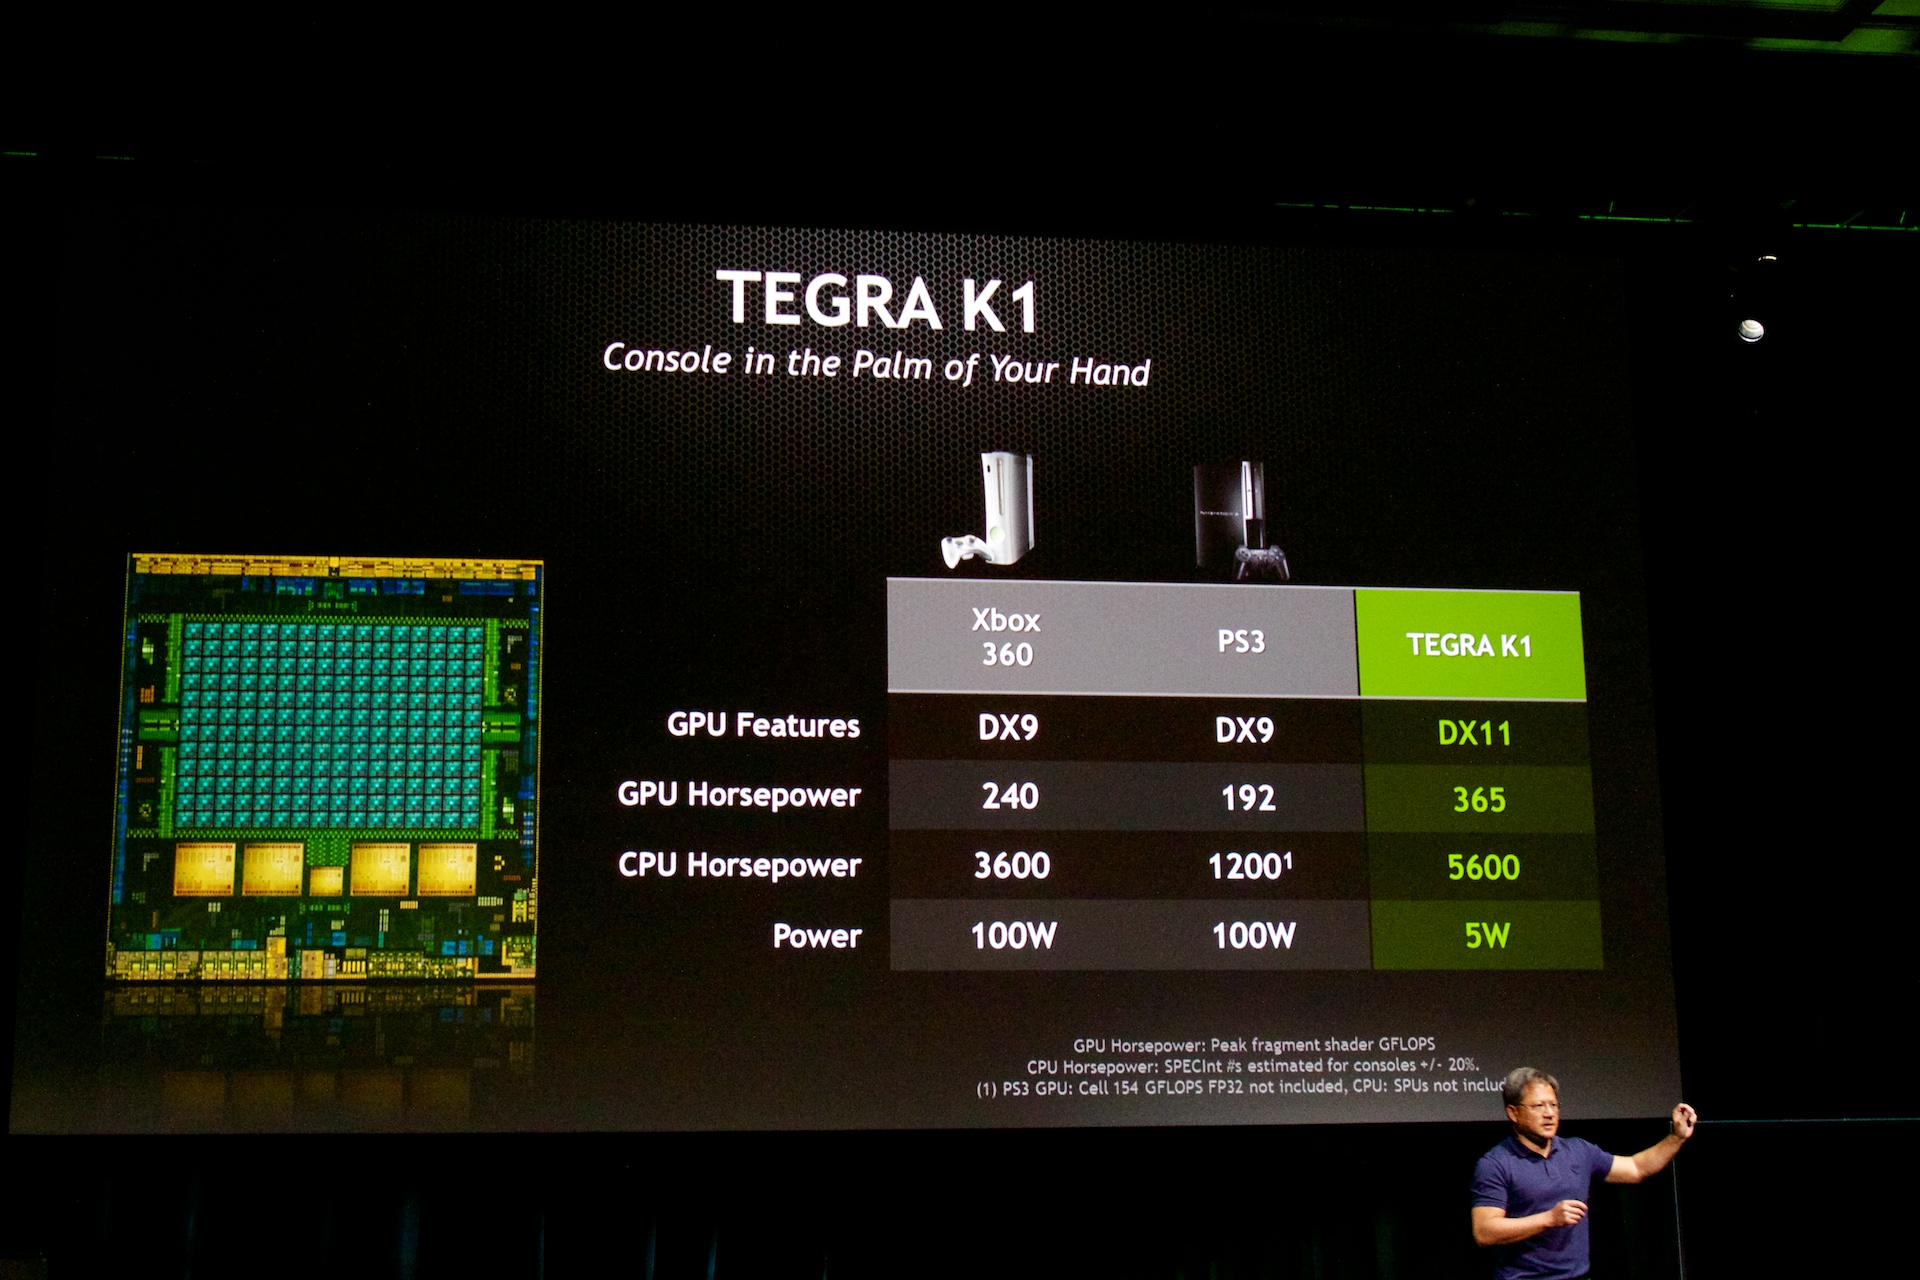 Huang showing off the Tegra K1's performance relative to last-gen consoles.